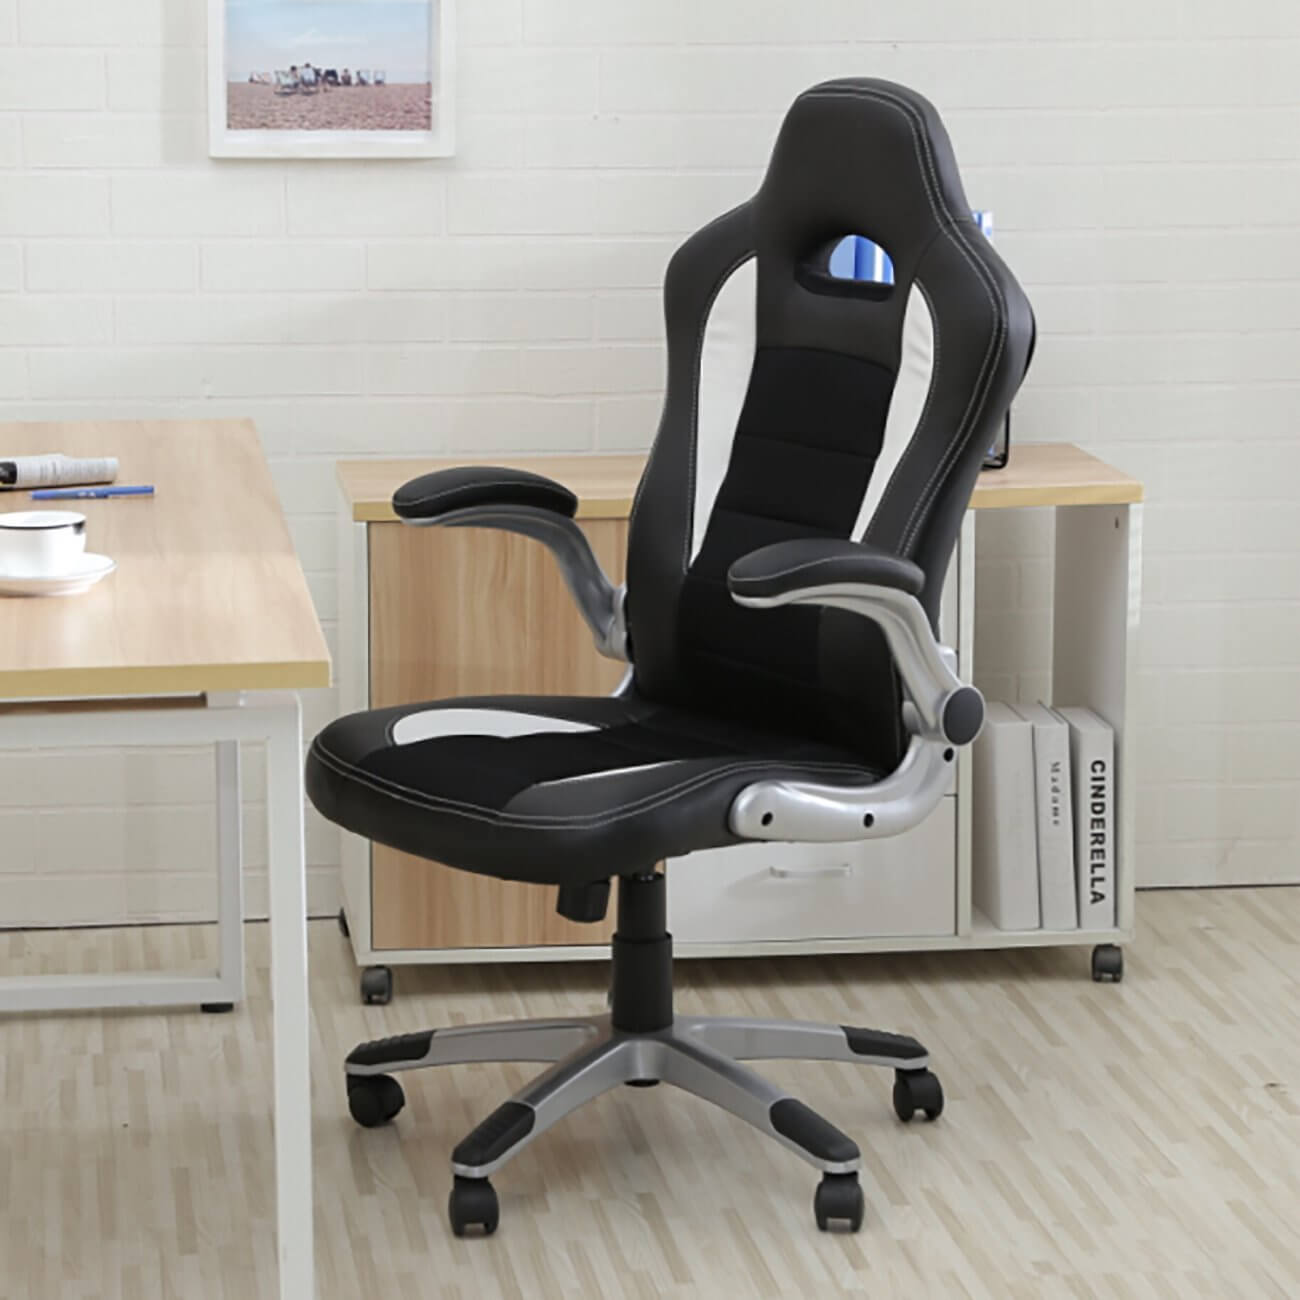 Budget Gaming Chairs